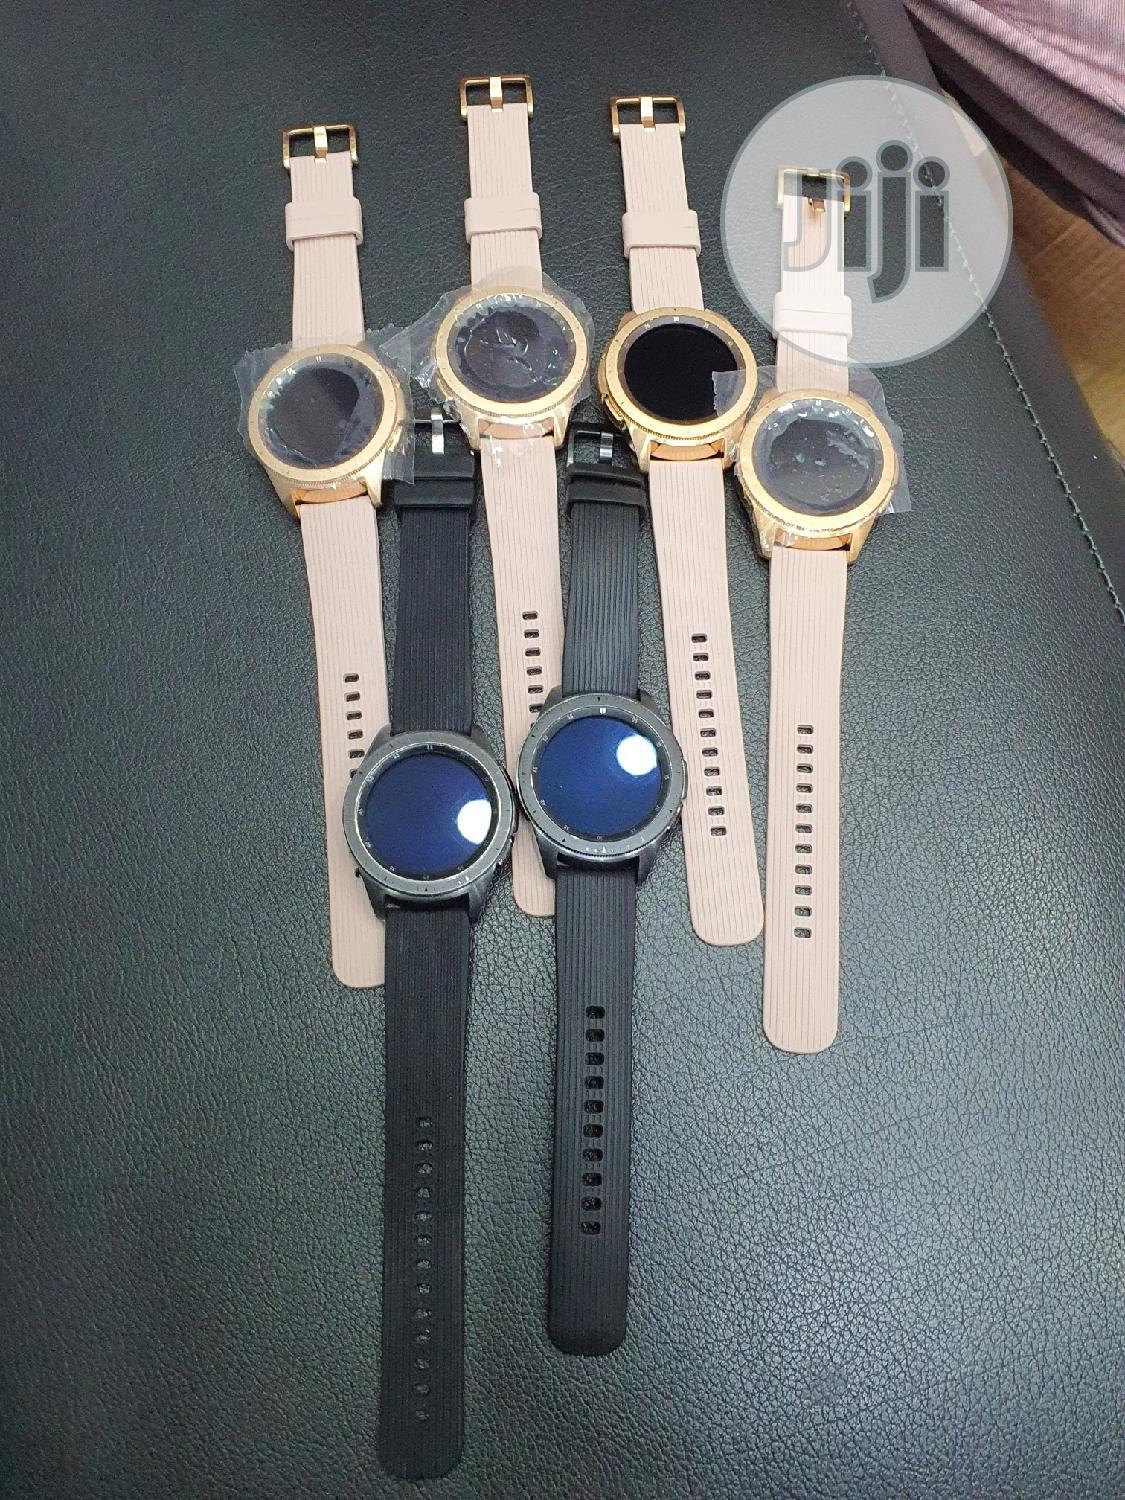 Foreign Used Samsung Galaxy Watch 42mm | Smart Watches & Trackers for sale in Wuse 2, Abuja (FCT) State, Nigeria